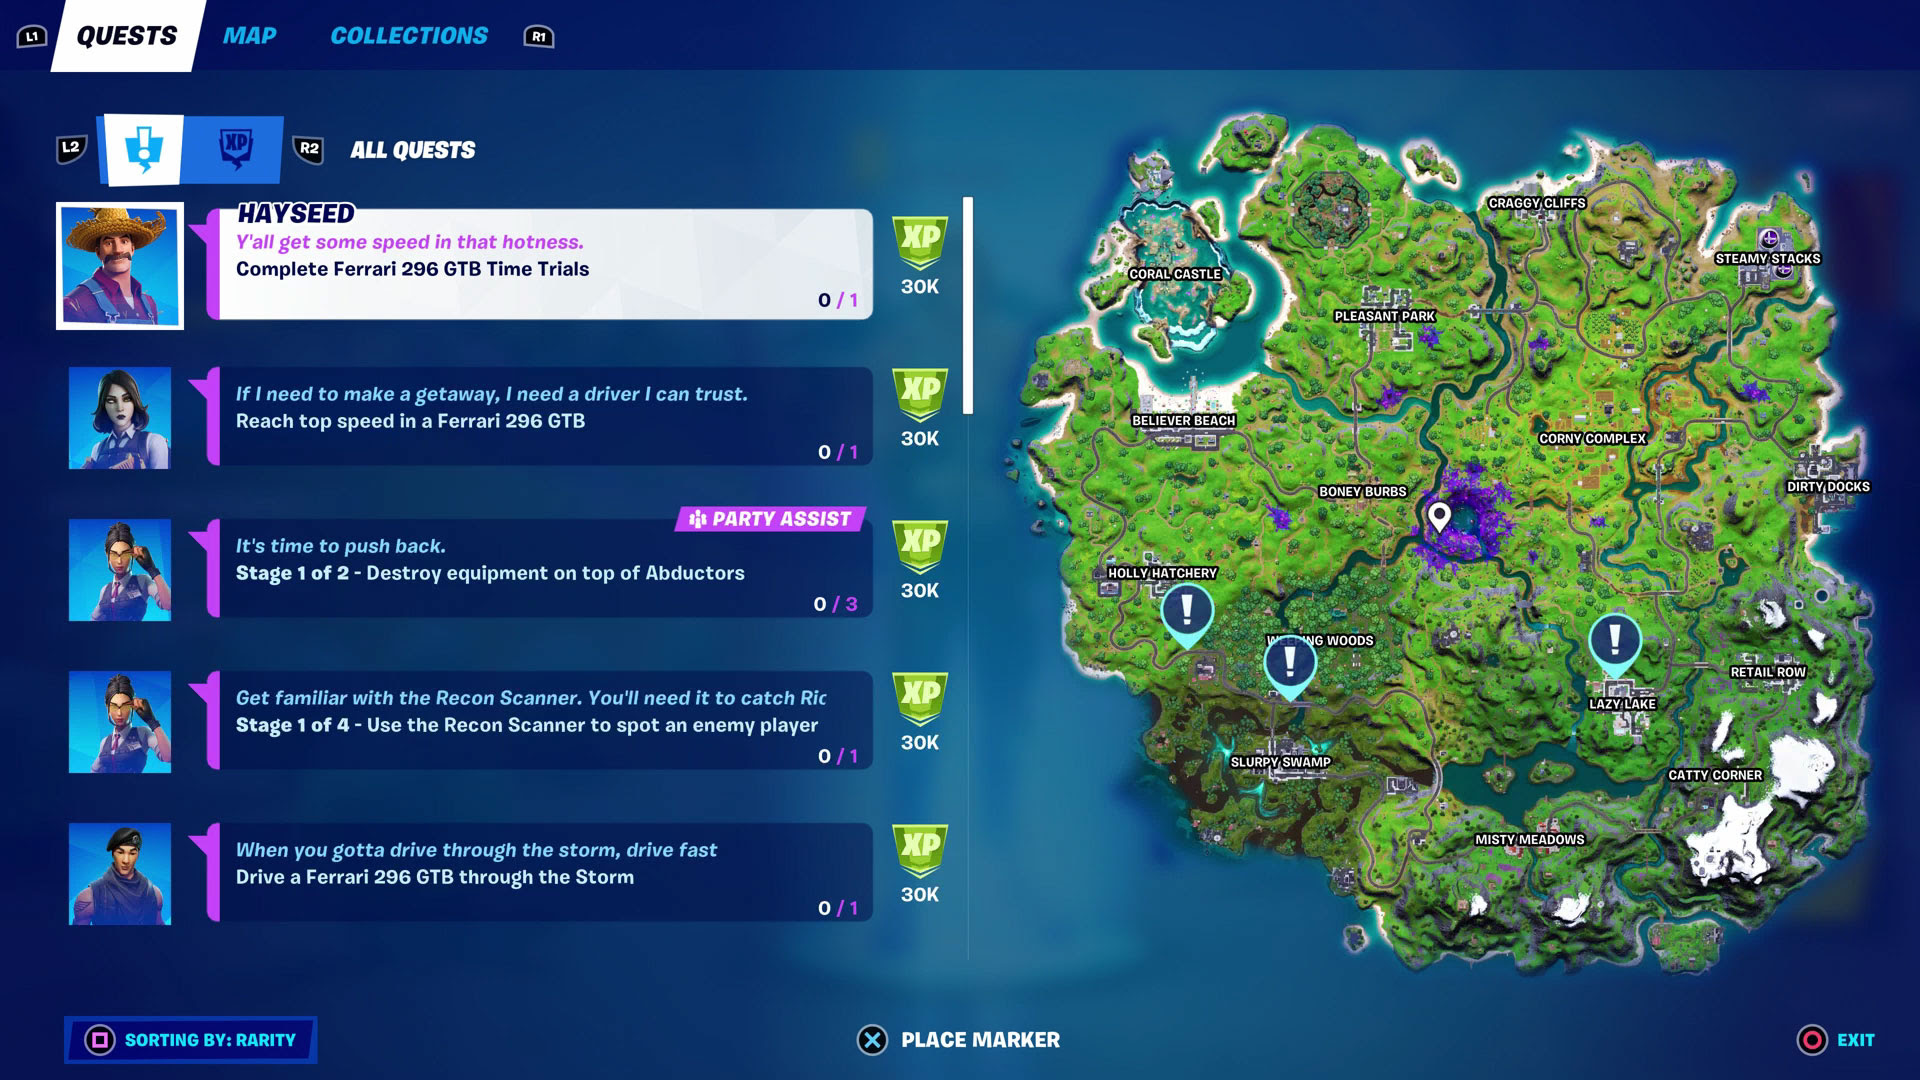 Fortnite Week 7 quests - how to take care of all the Epic Quests and Legendary Quests in Season 7